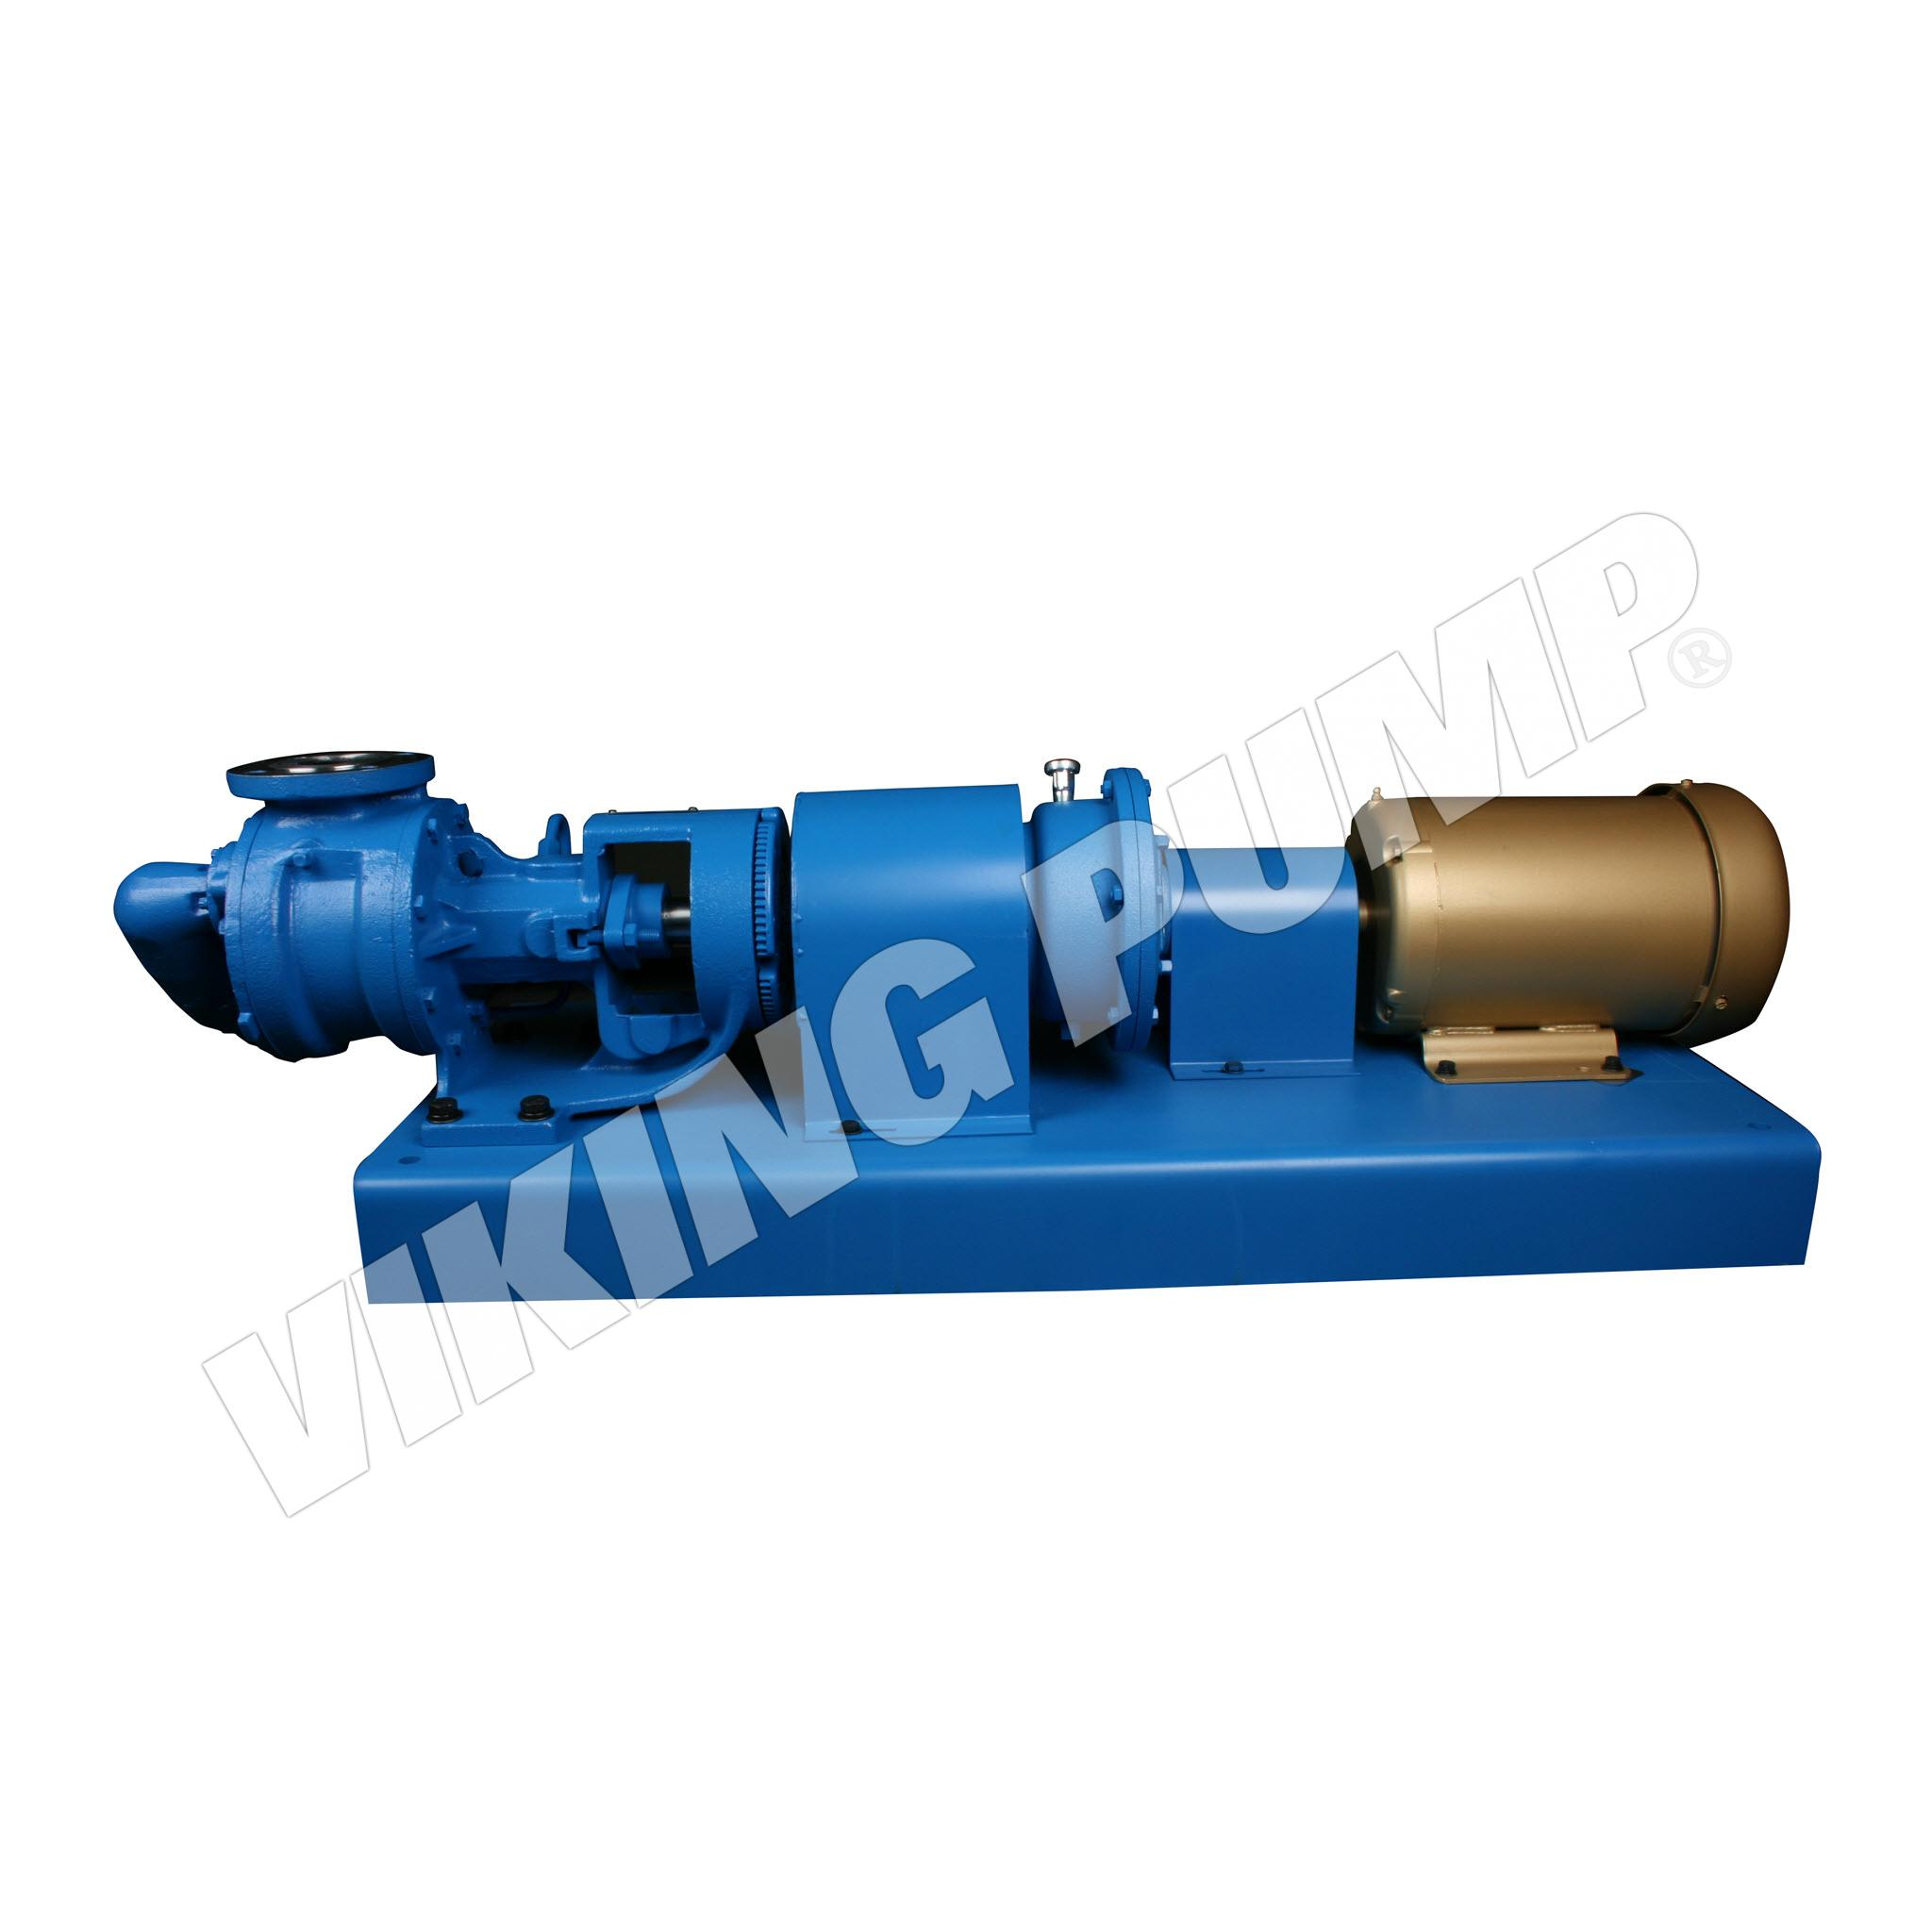 Model K4123A, Foot Mounted, Mechanical Seal, Relief Valve Pump with R Drive Unit